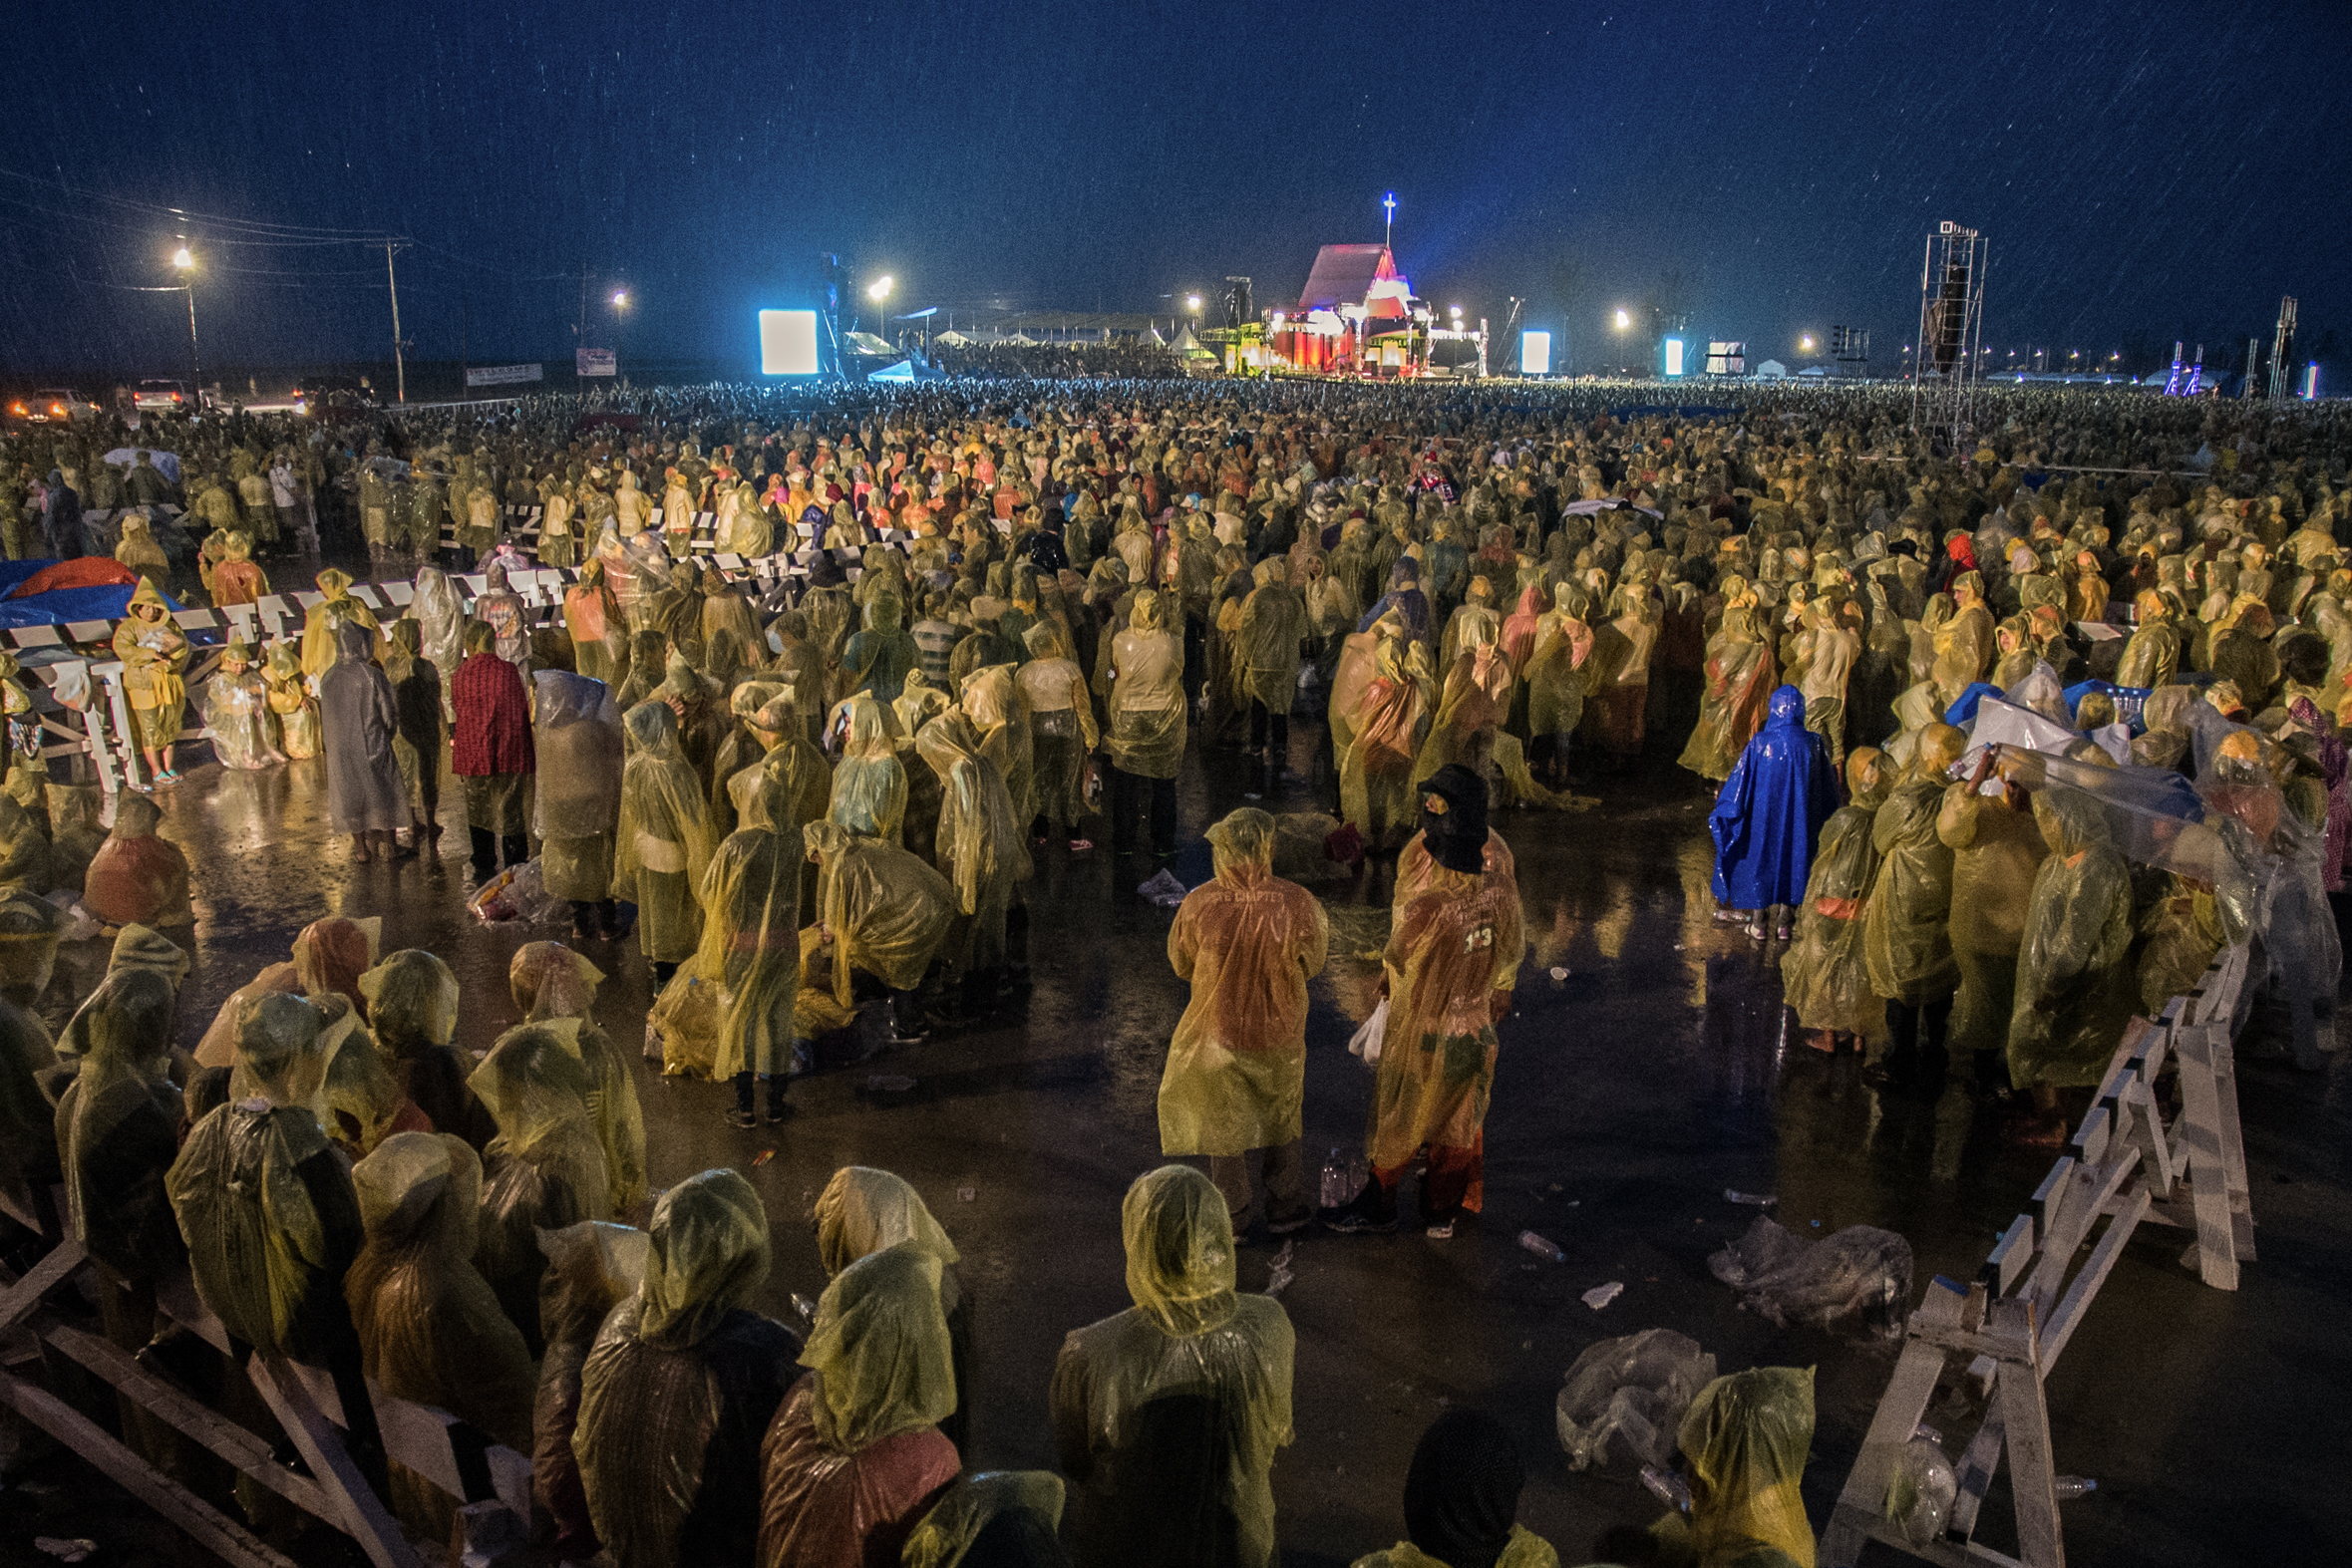 Amid strong winds and rain brought bytyphoon Amang,  pilgrims gathernear the Tacloban airport the night before Pope Francis' Holy Mass for the victims of Typhoon Yolanda.